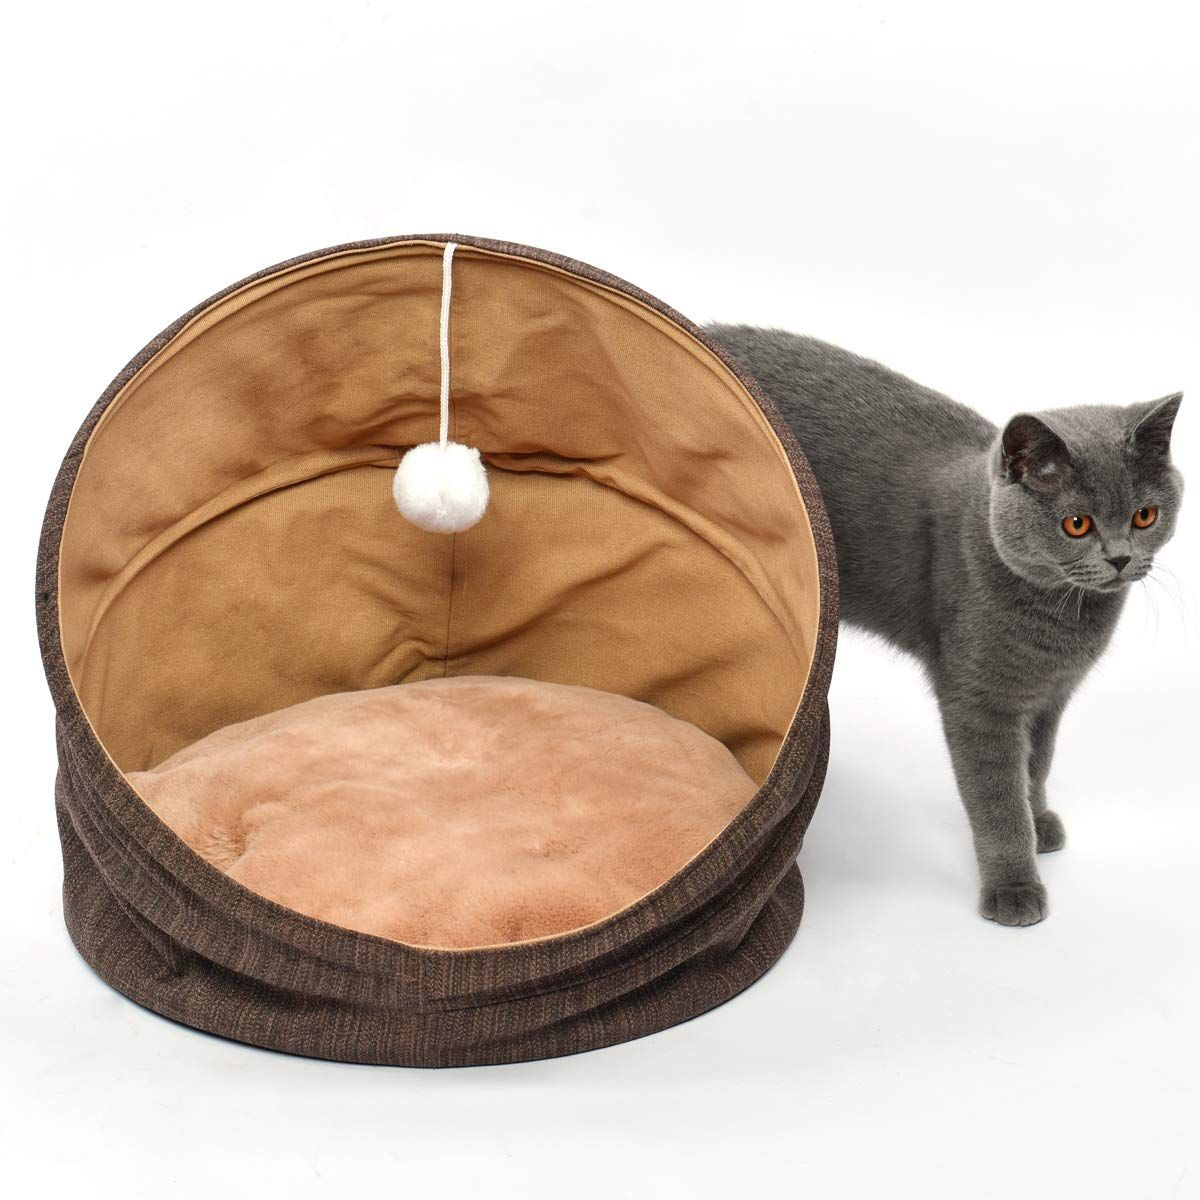 Cuddle Cave Pet Bed Tent For Cats Or Small Dogs Washable Foldable Kitten House With Luxury Shag Faux Fur Mattress Kitten House Bed Tent Pet Bed